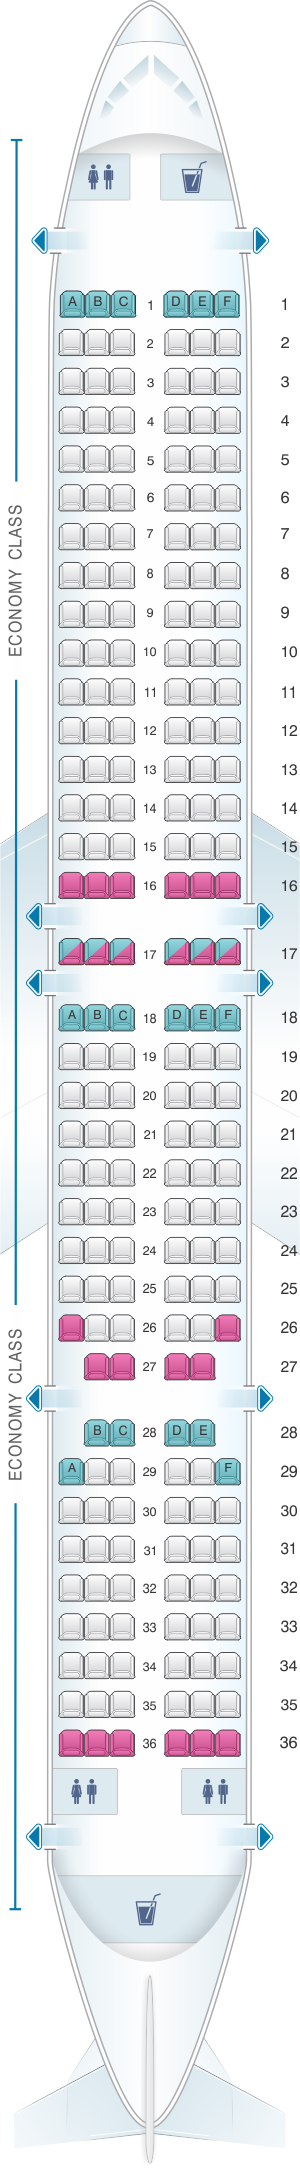 Seat map for SpiceJet Boeing B737 900ER